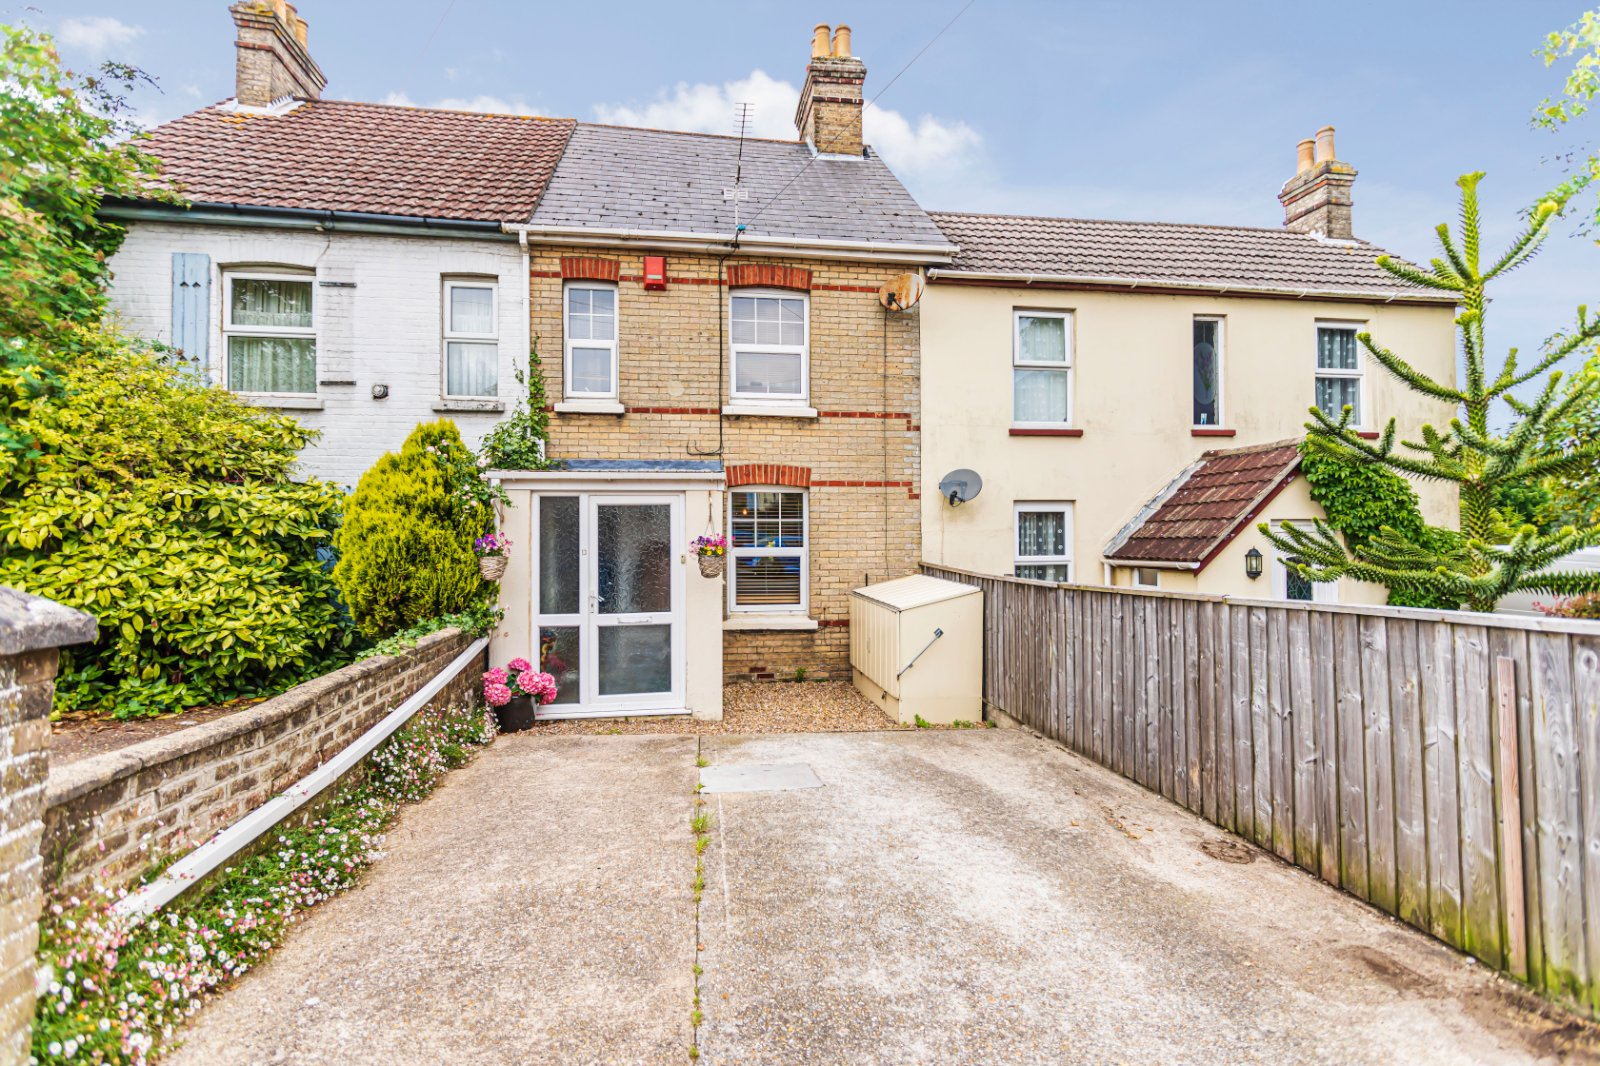 3 bed house for sale in Uppleby Road, Parkstone 1